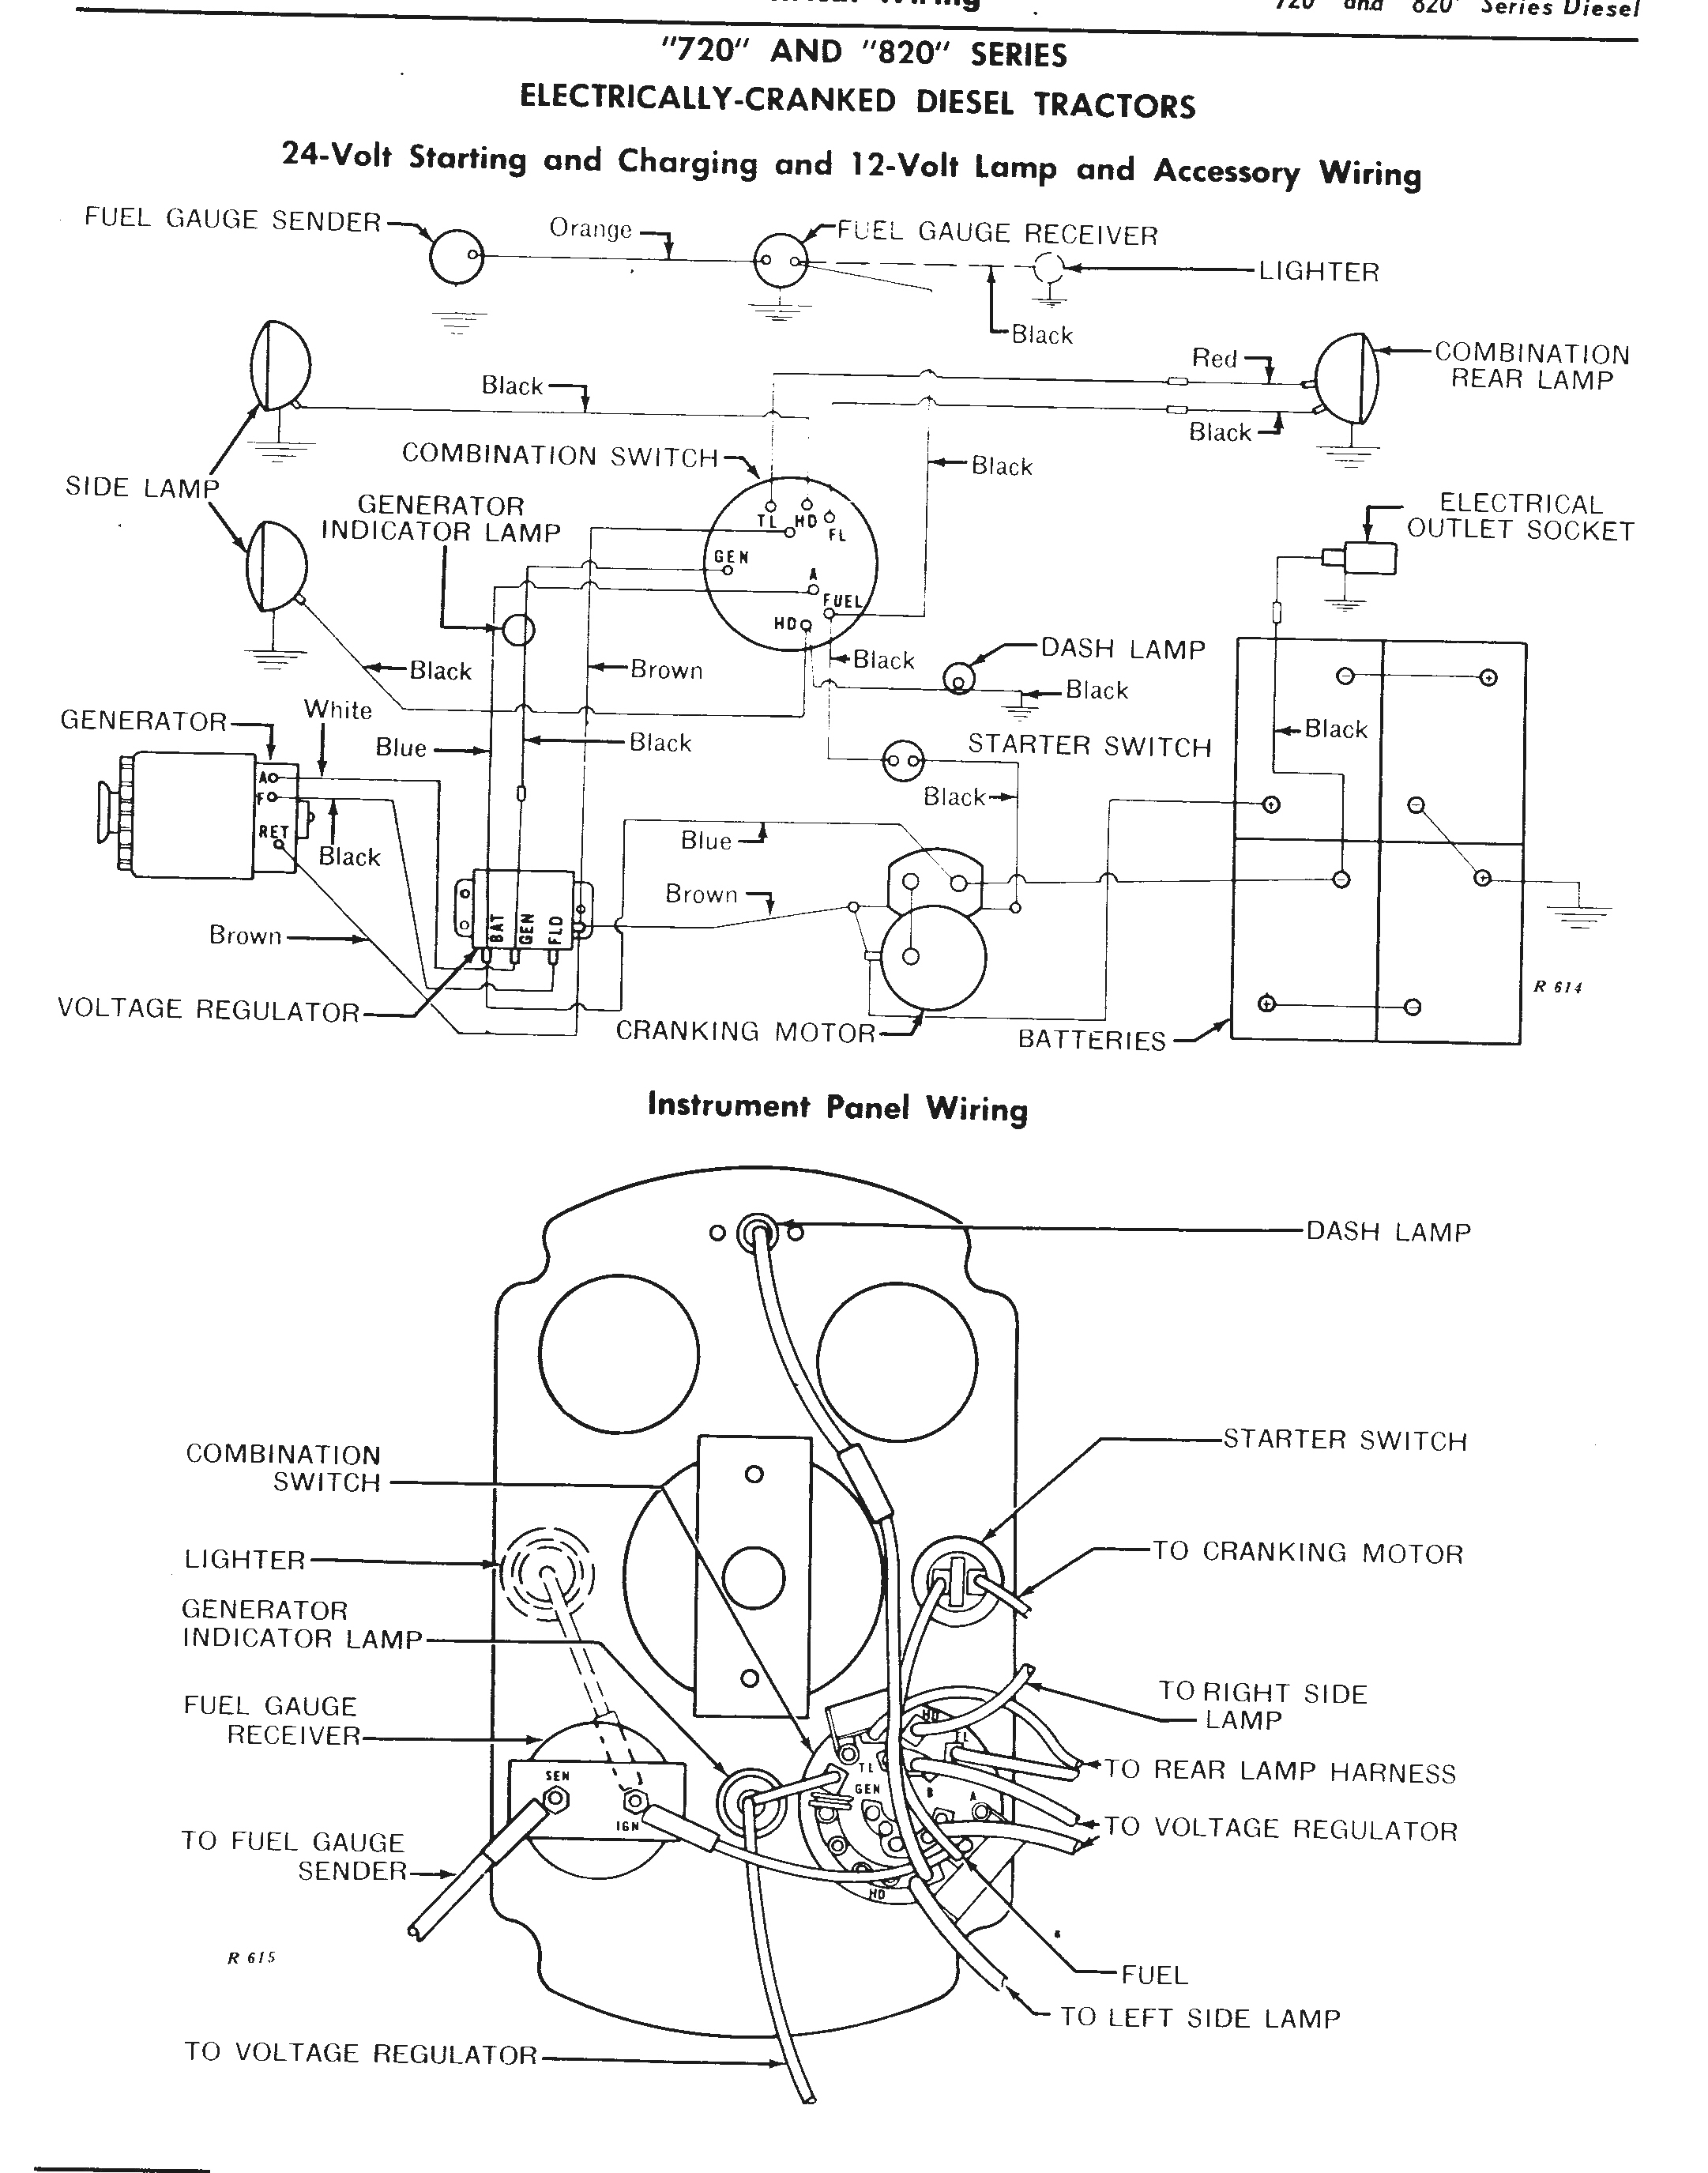 deere_24v_wiring the john deere 24 volt electrical system explained john deere 4020 24v to 12v conversion wiring diagram at fashall.co